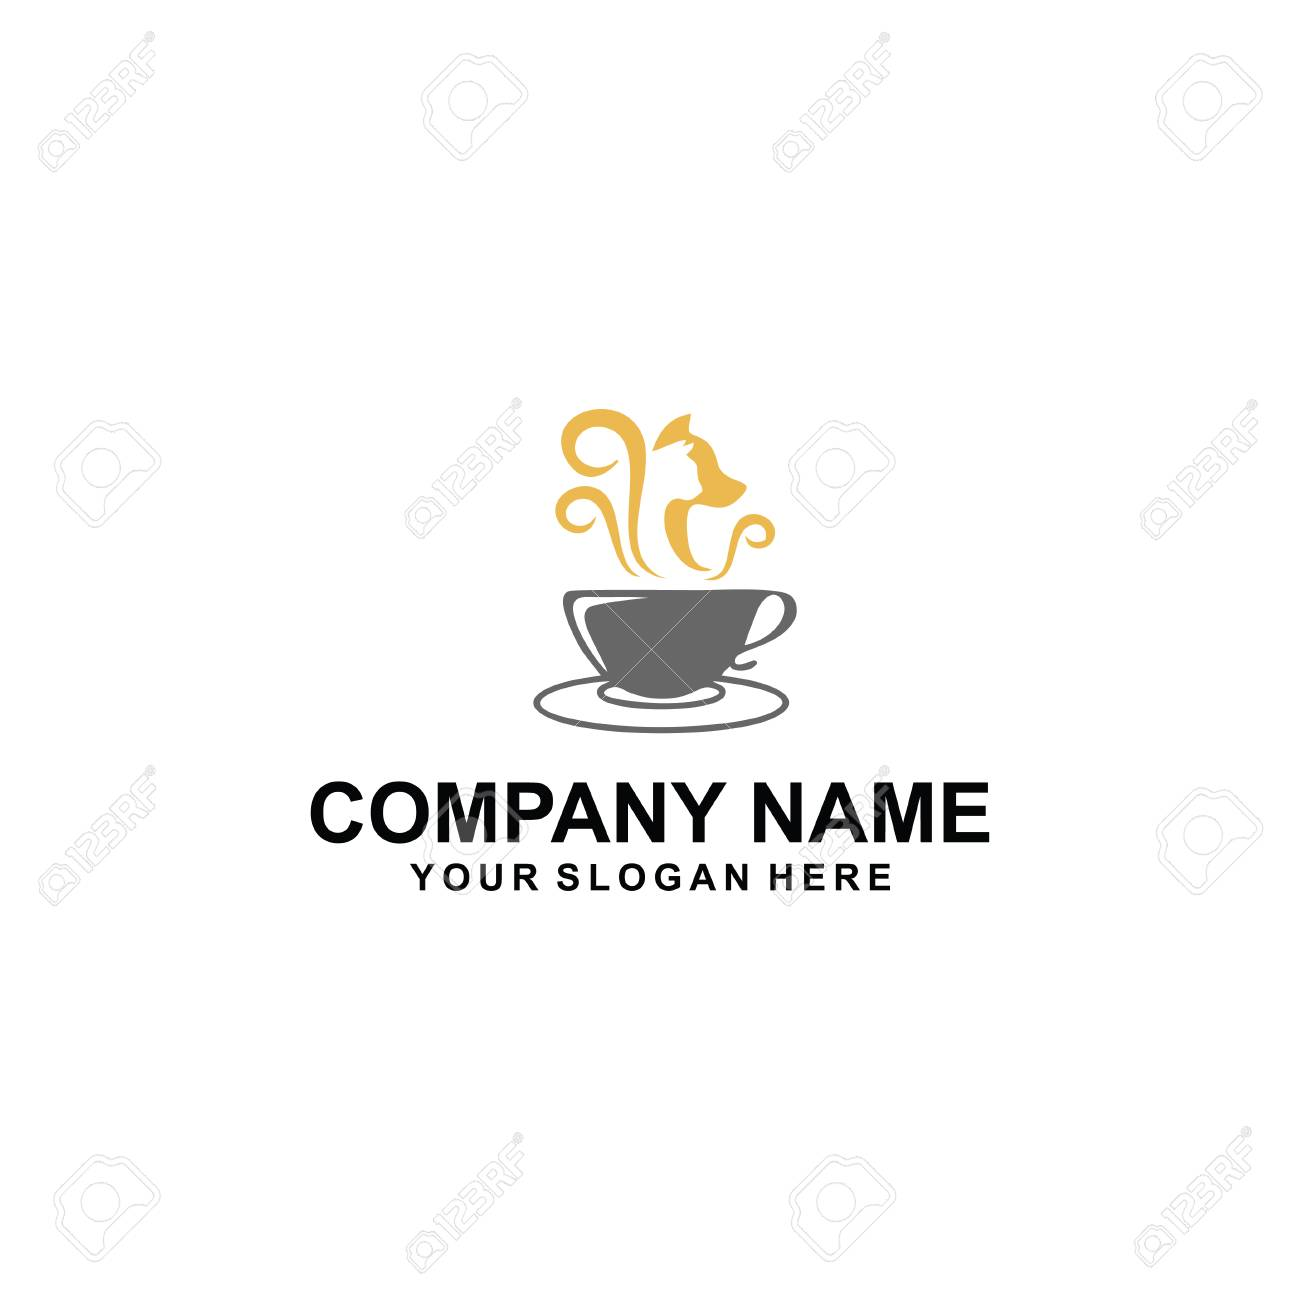 Cafe cat and dog logo design